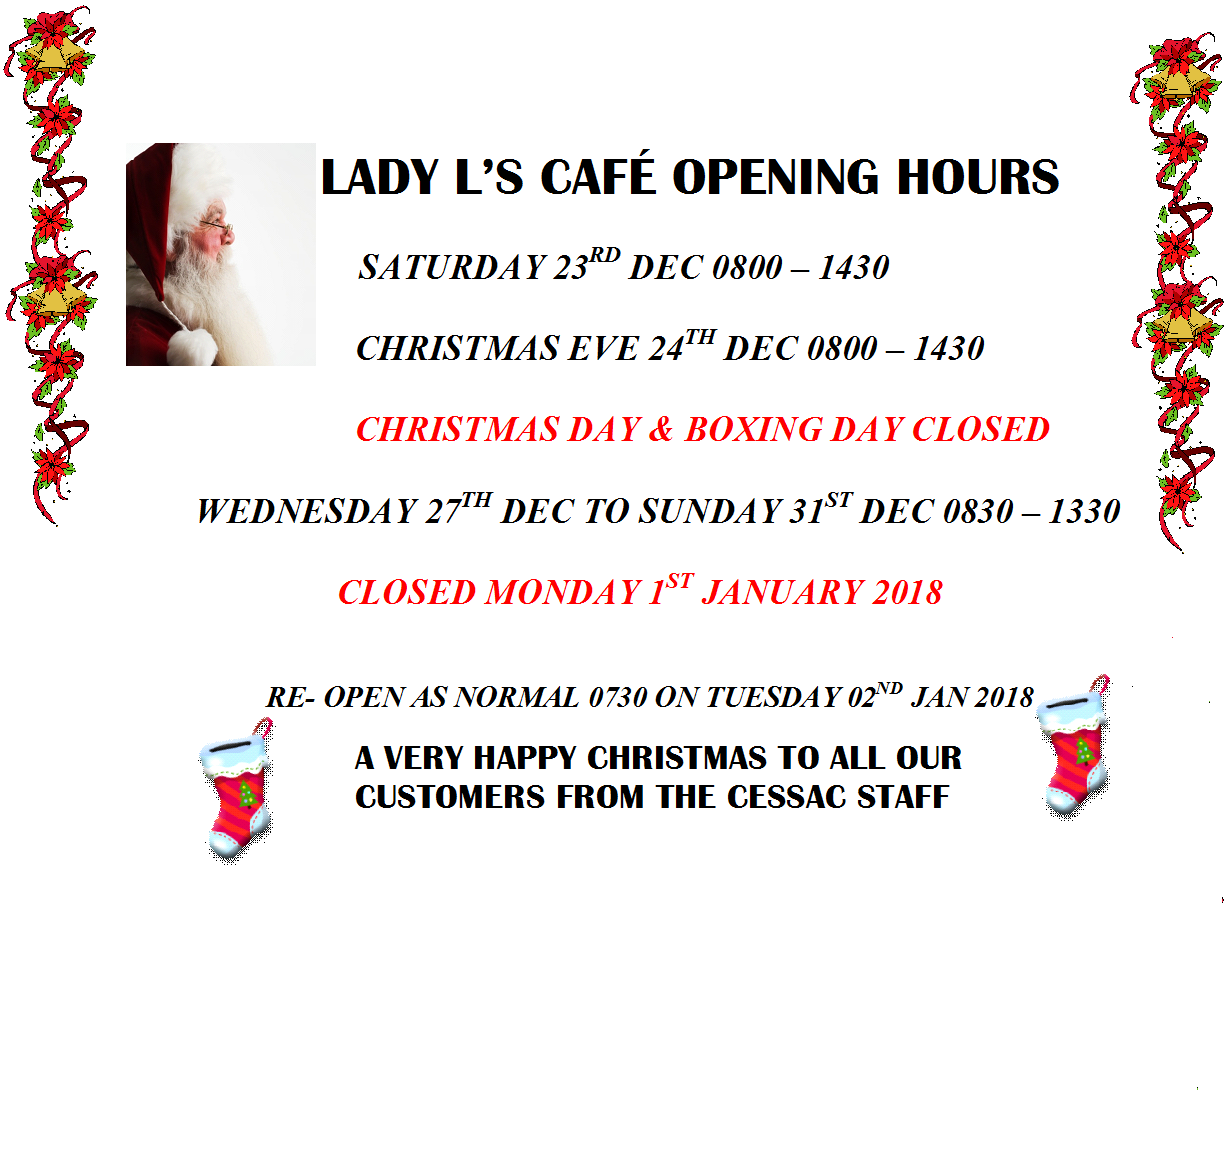 AKROTIRI HIVE: Lady L\'s Cafe - Christmas Opening Hours